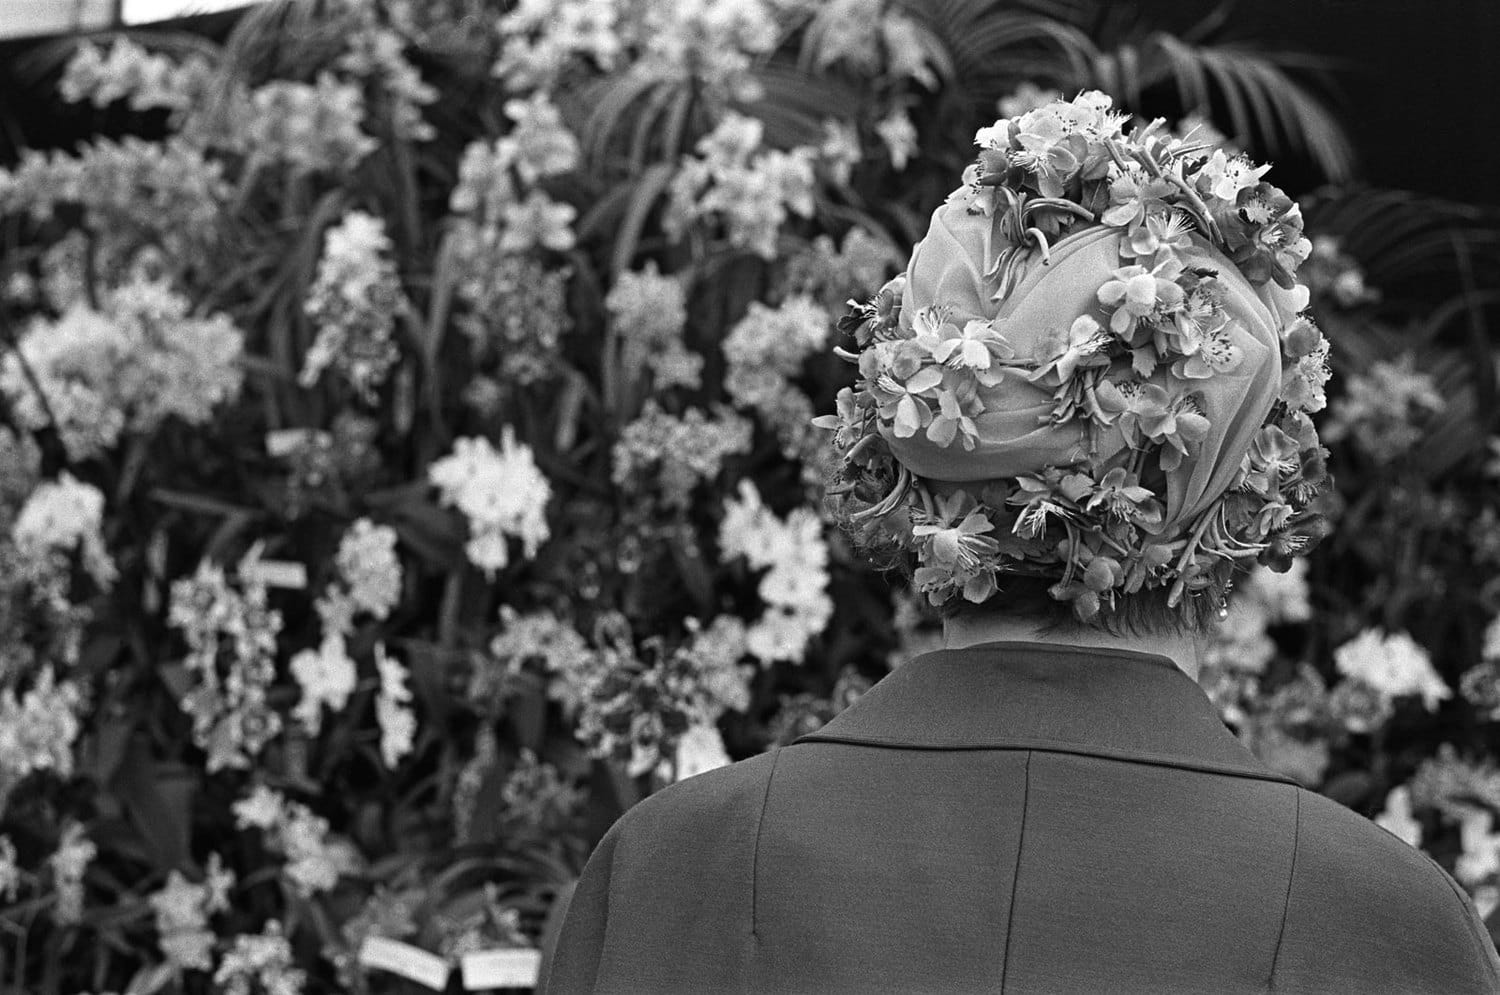 Homer Sykes, Woman wearing floral fashion hat, Chelsea Flower Show, London, 1968